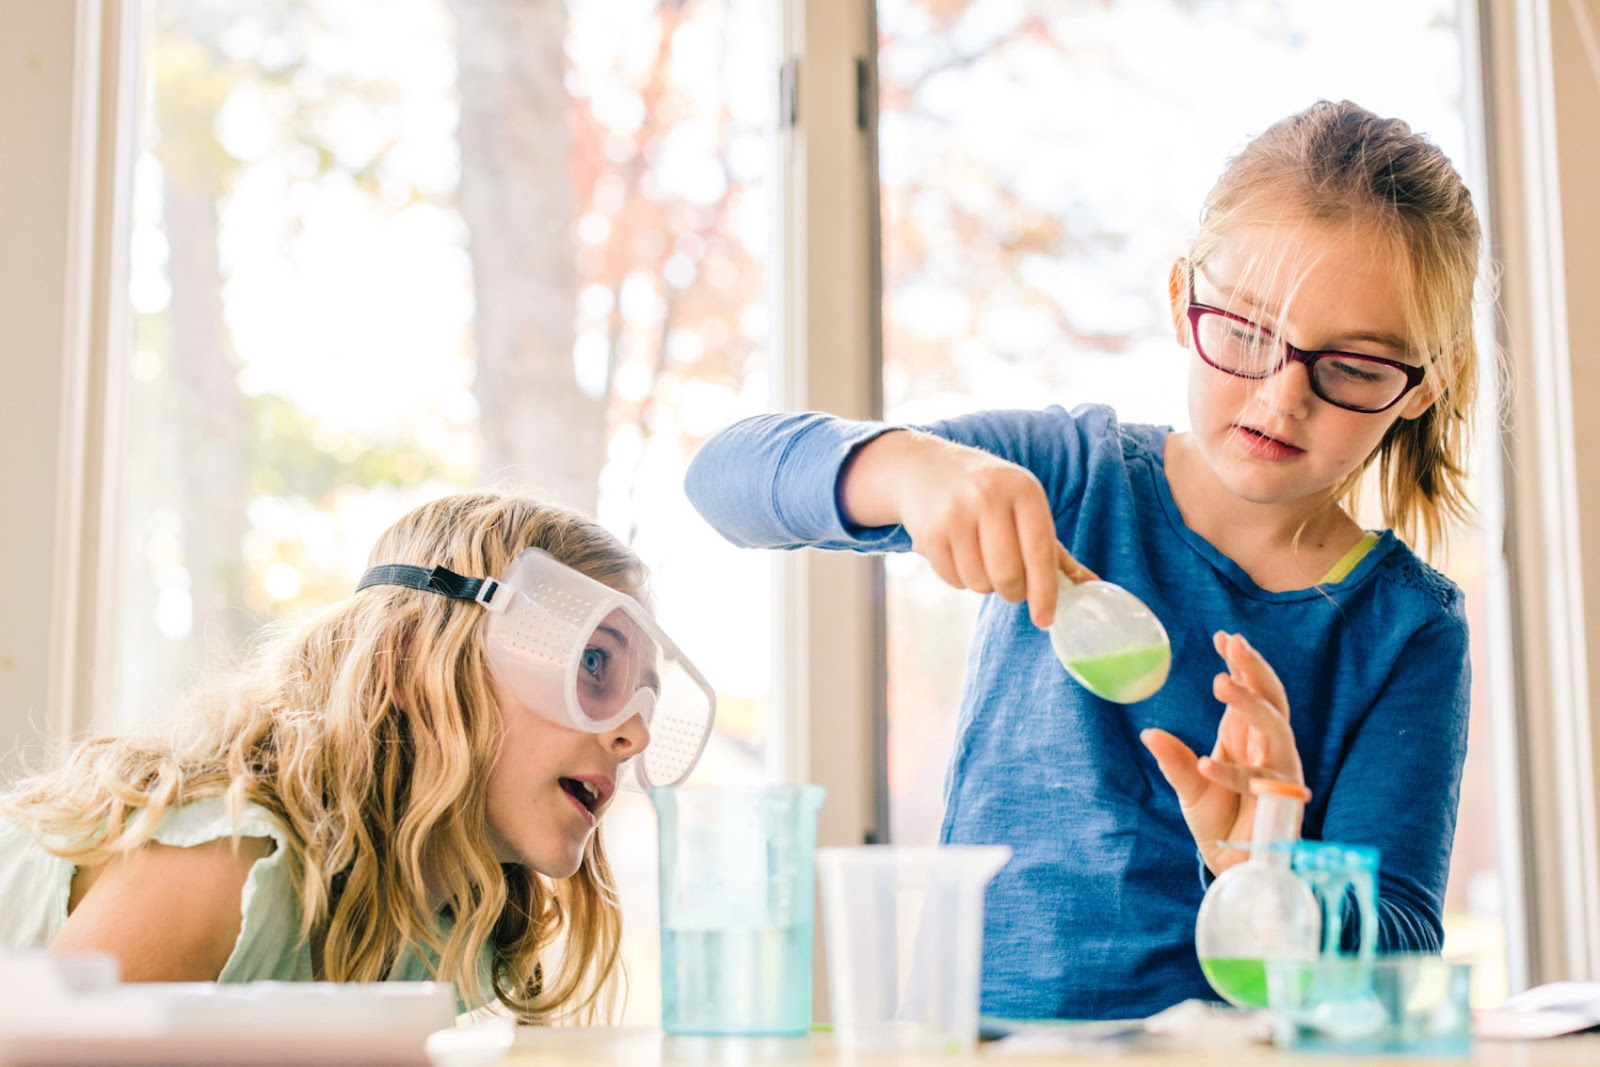 Two girls doing a science experiment